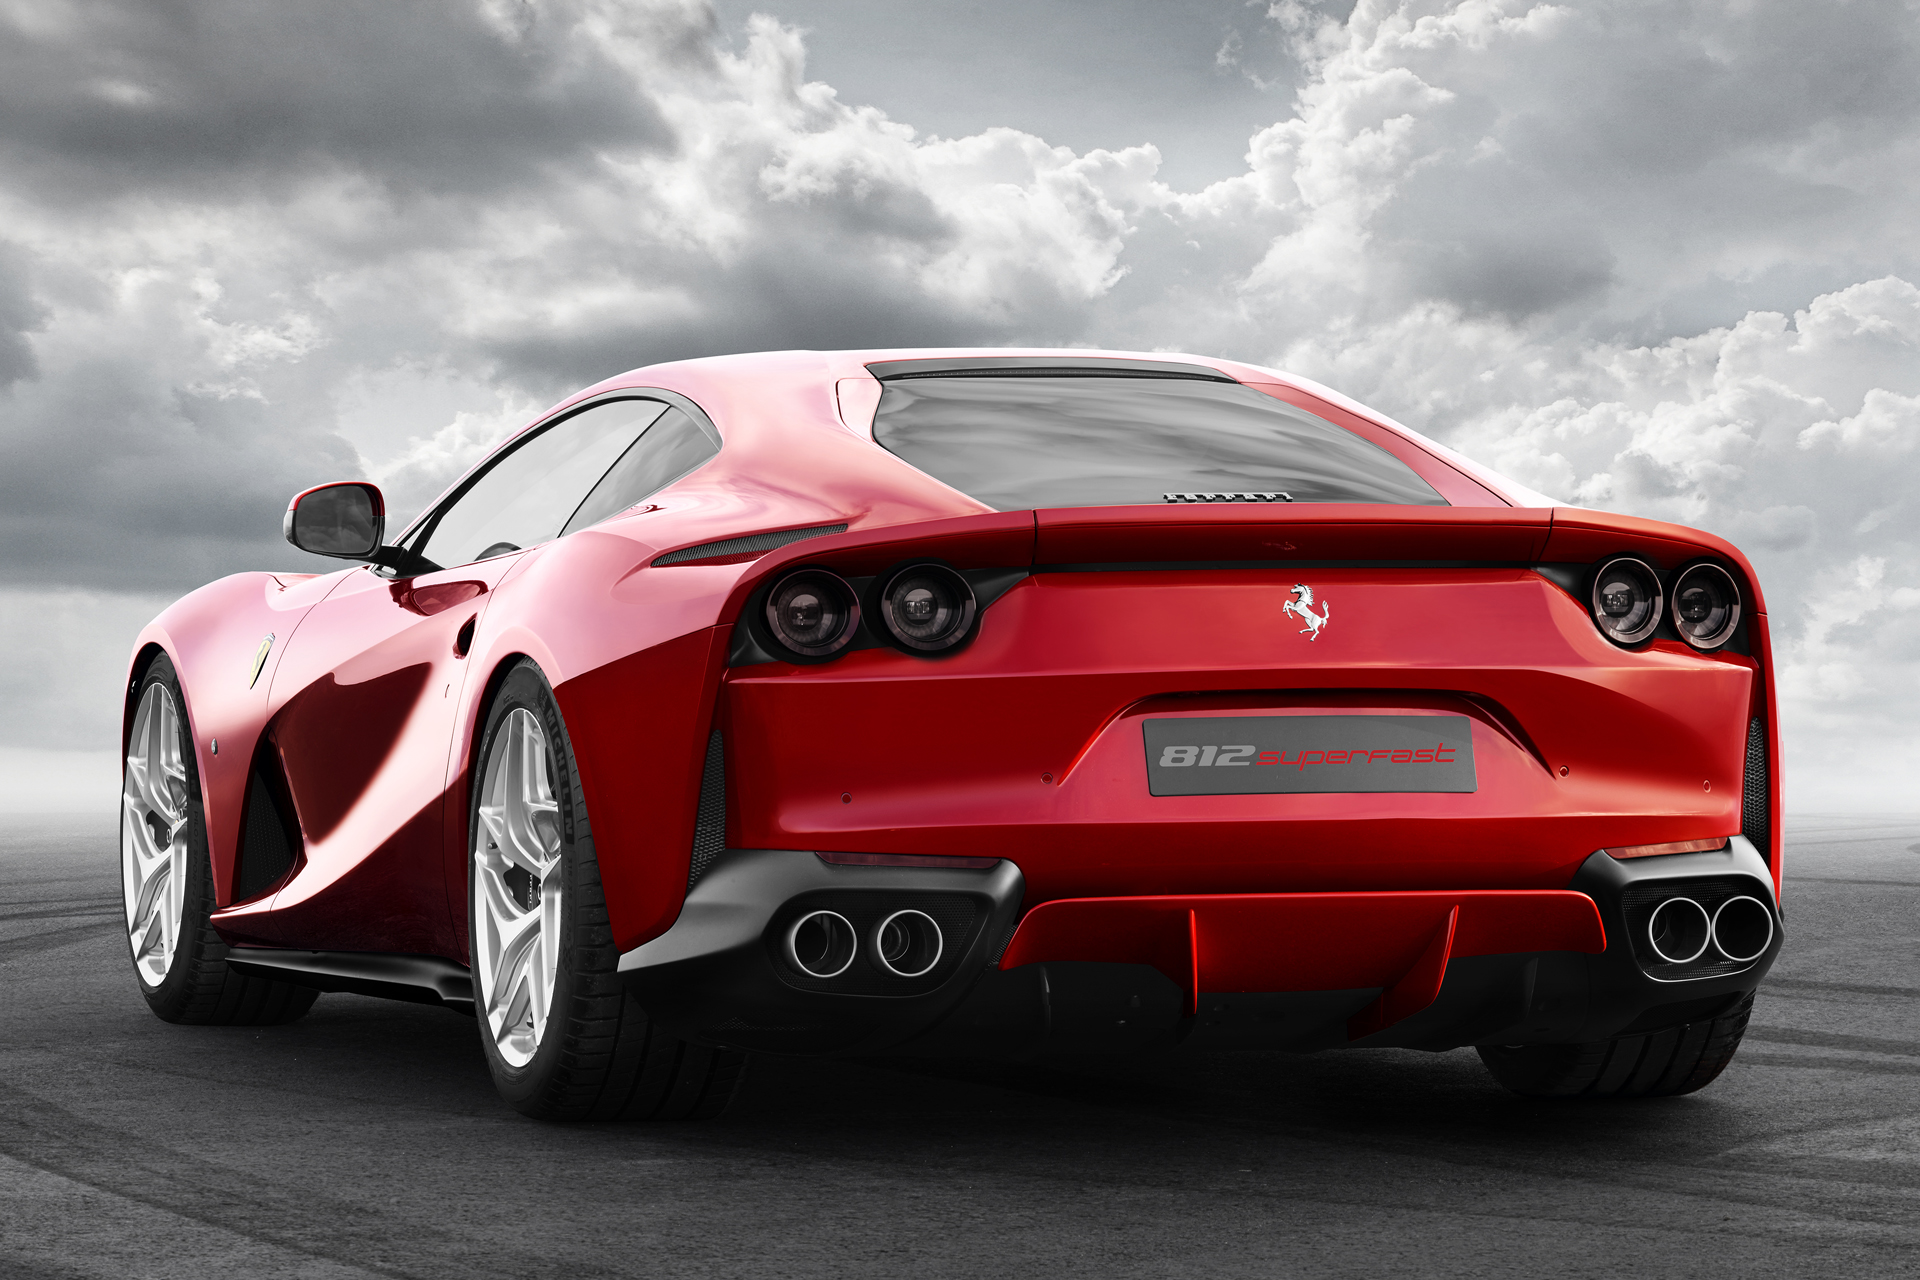 Ferrari 812 Superfast Spider